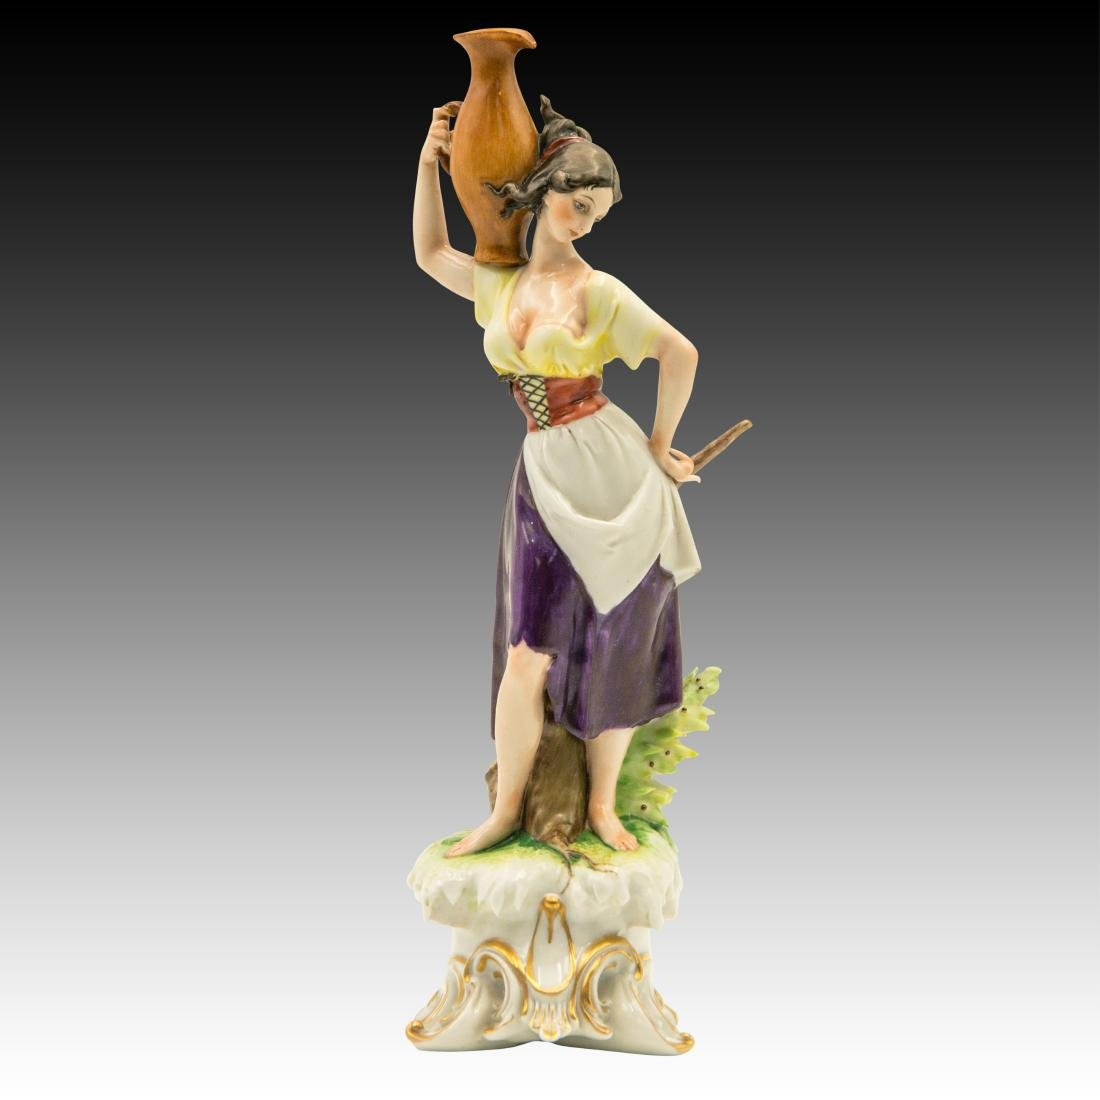 Young Peasant Woman Carrying a Water Jug Figurine